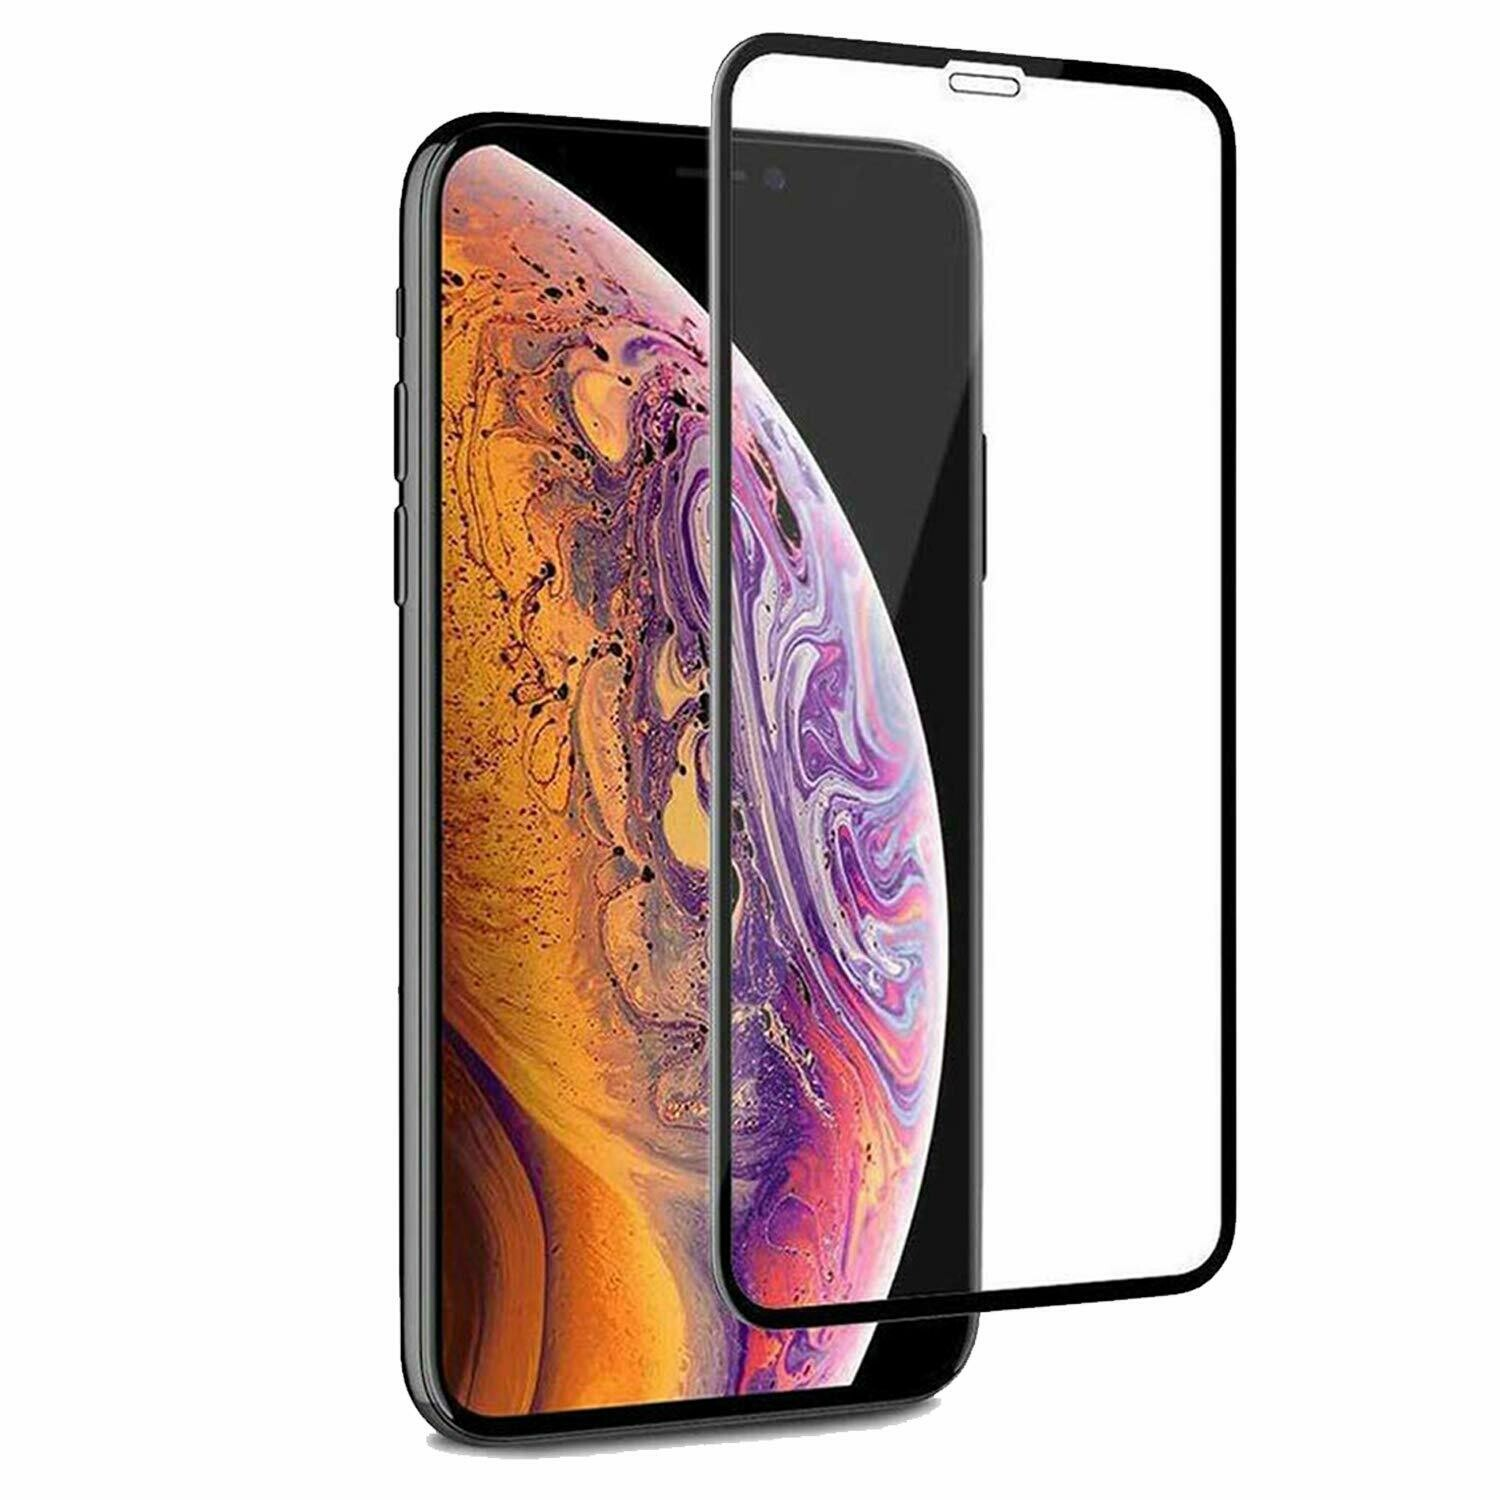 OpenTech Tempered Glass Screen Protector Compatible for iPhone XR / 11 with Edge to Edge Coverage and Easy